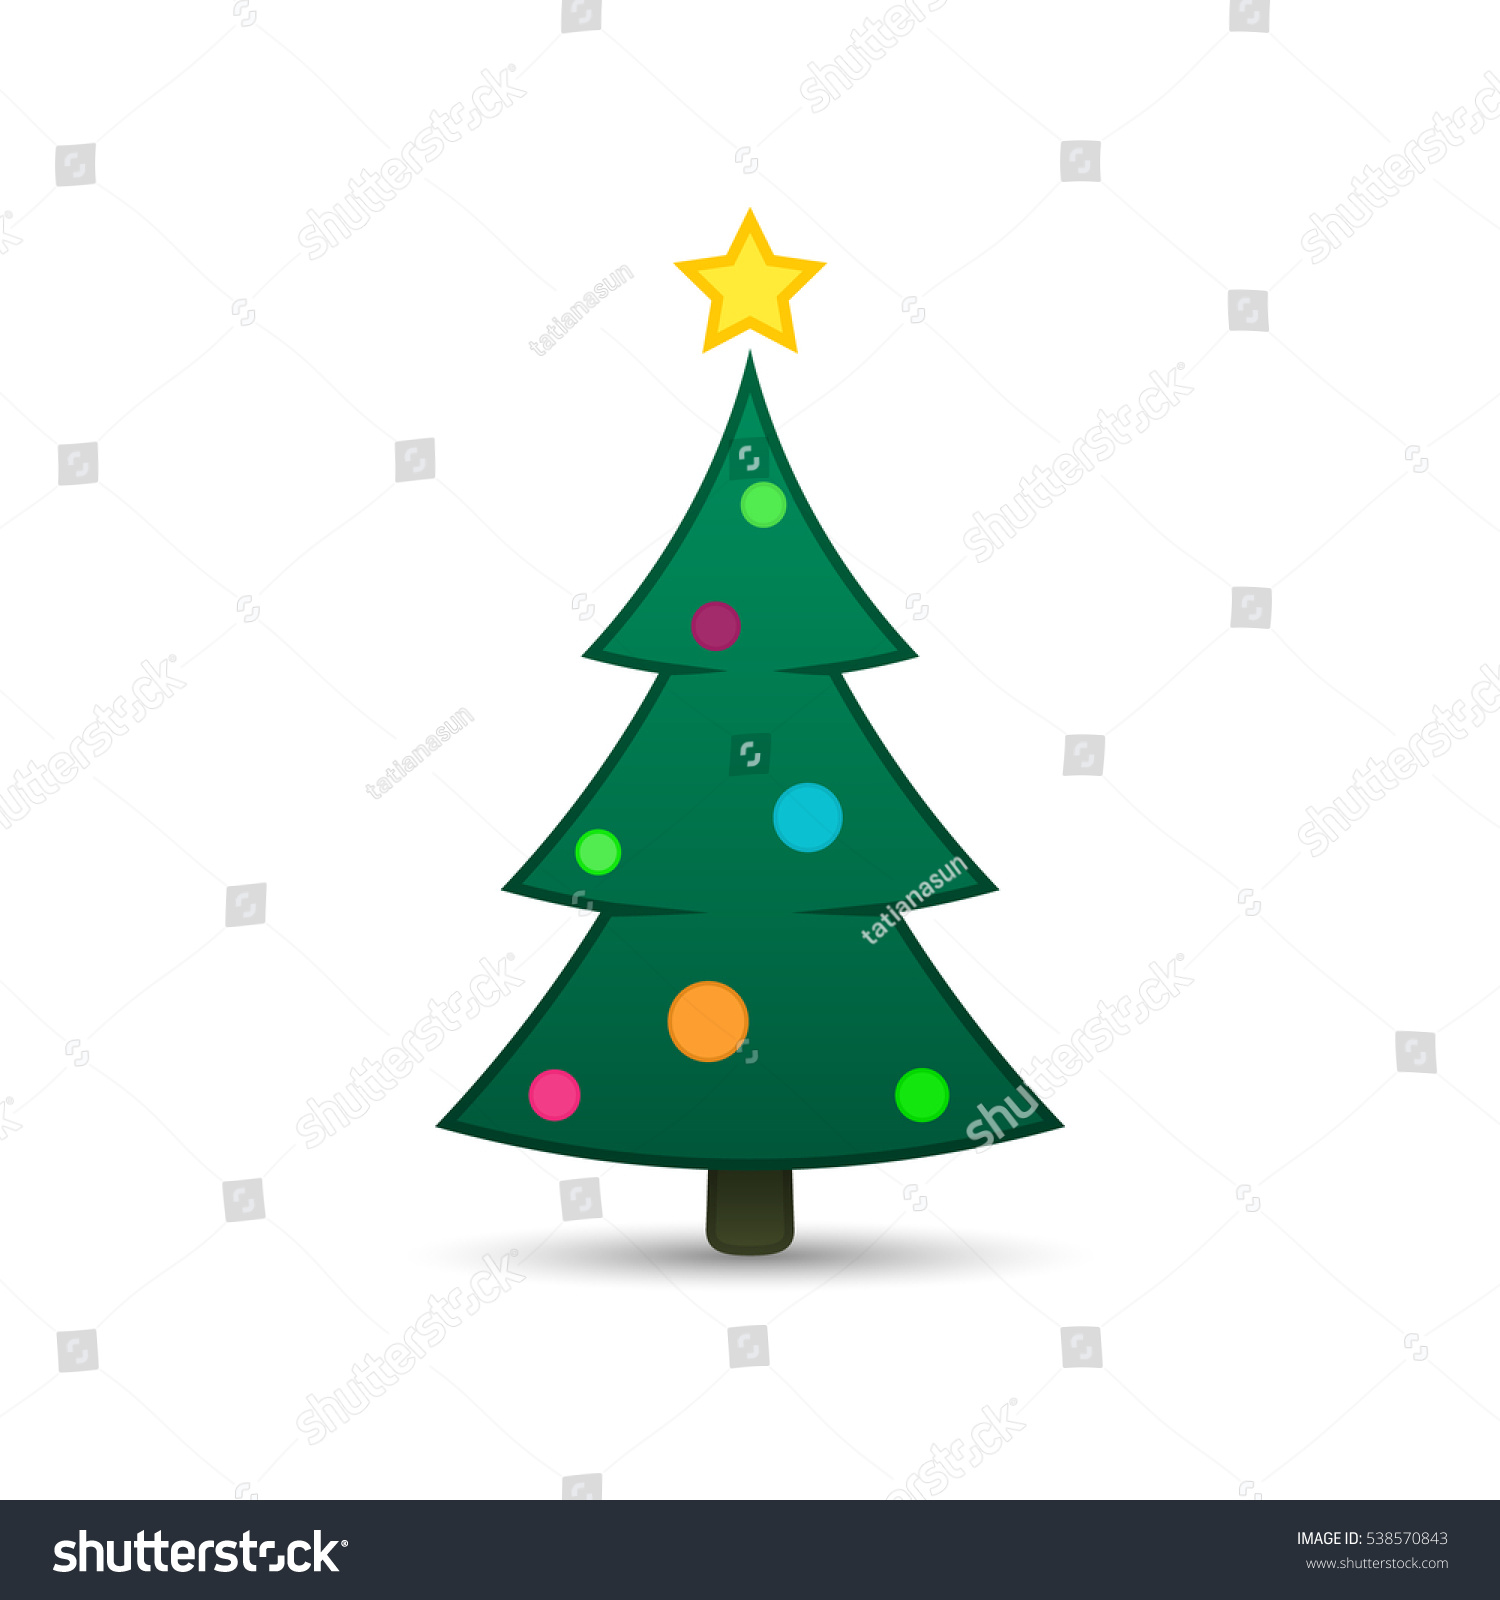 Christmas tree color green icon with balls vector design